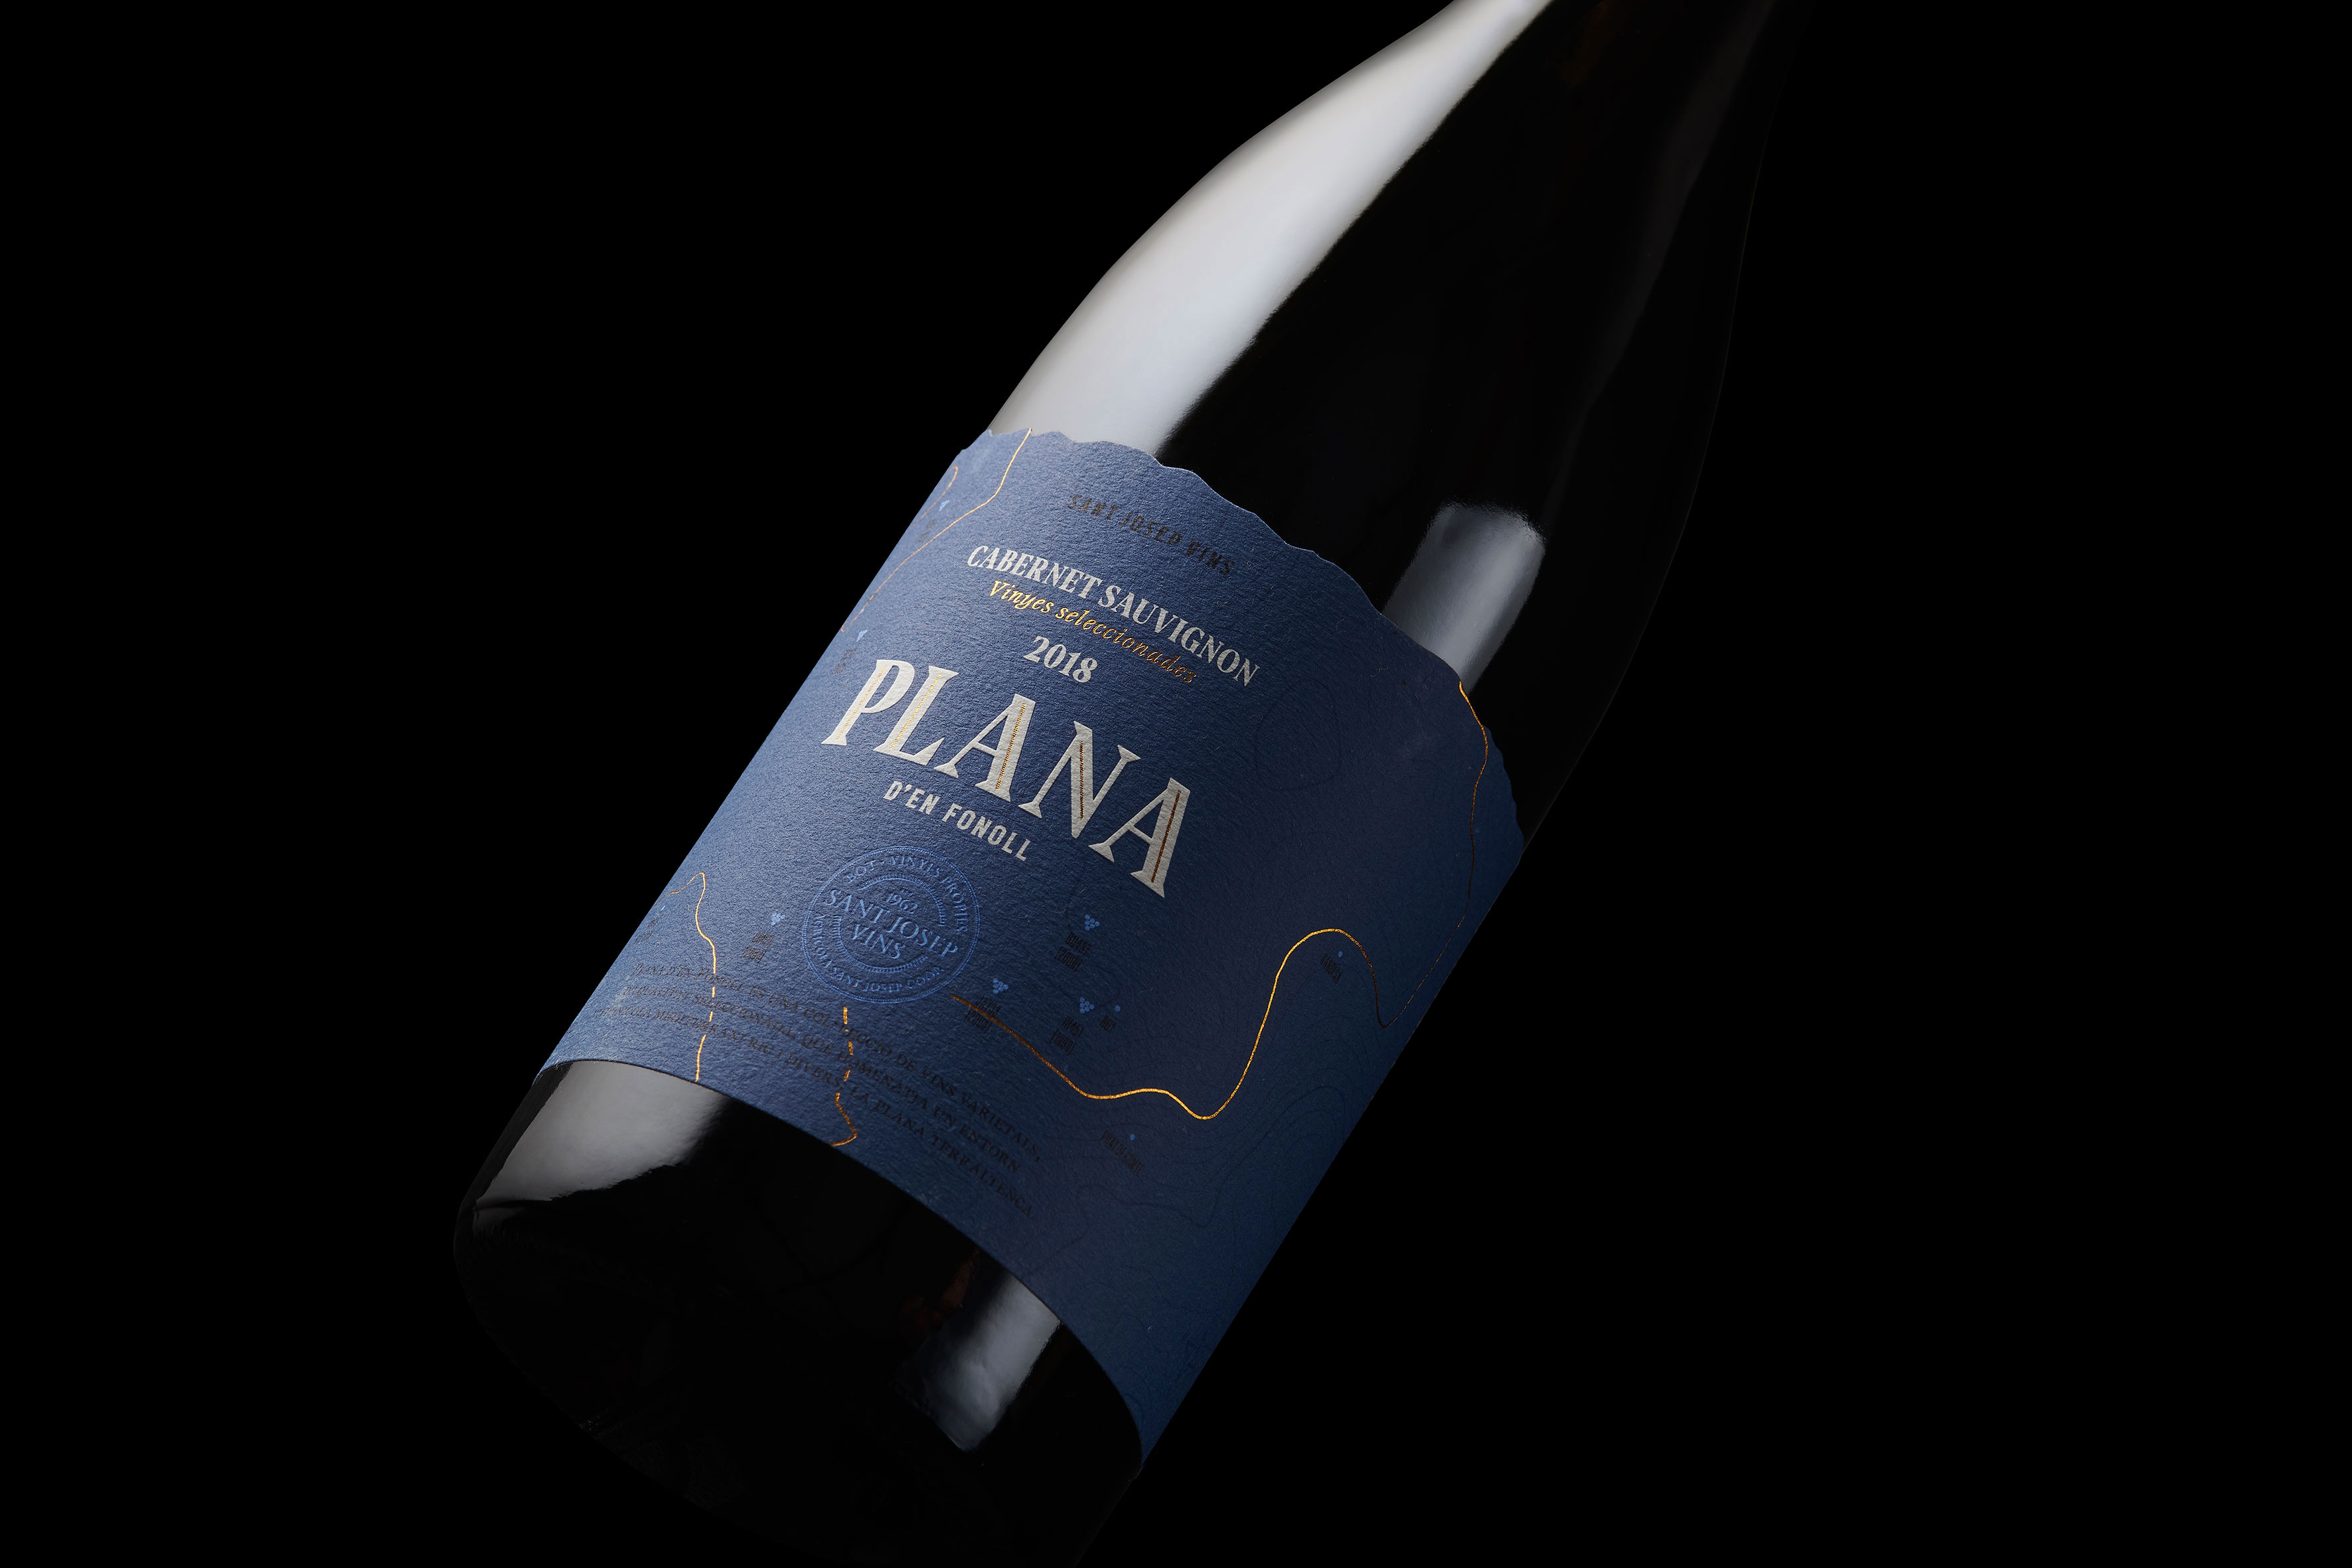 Plana d'en Fonoll Wines Designed by Titular Studio